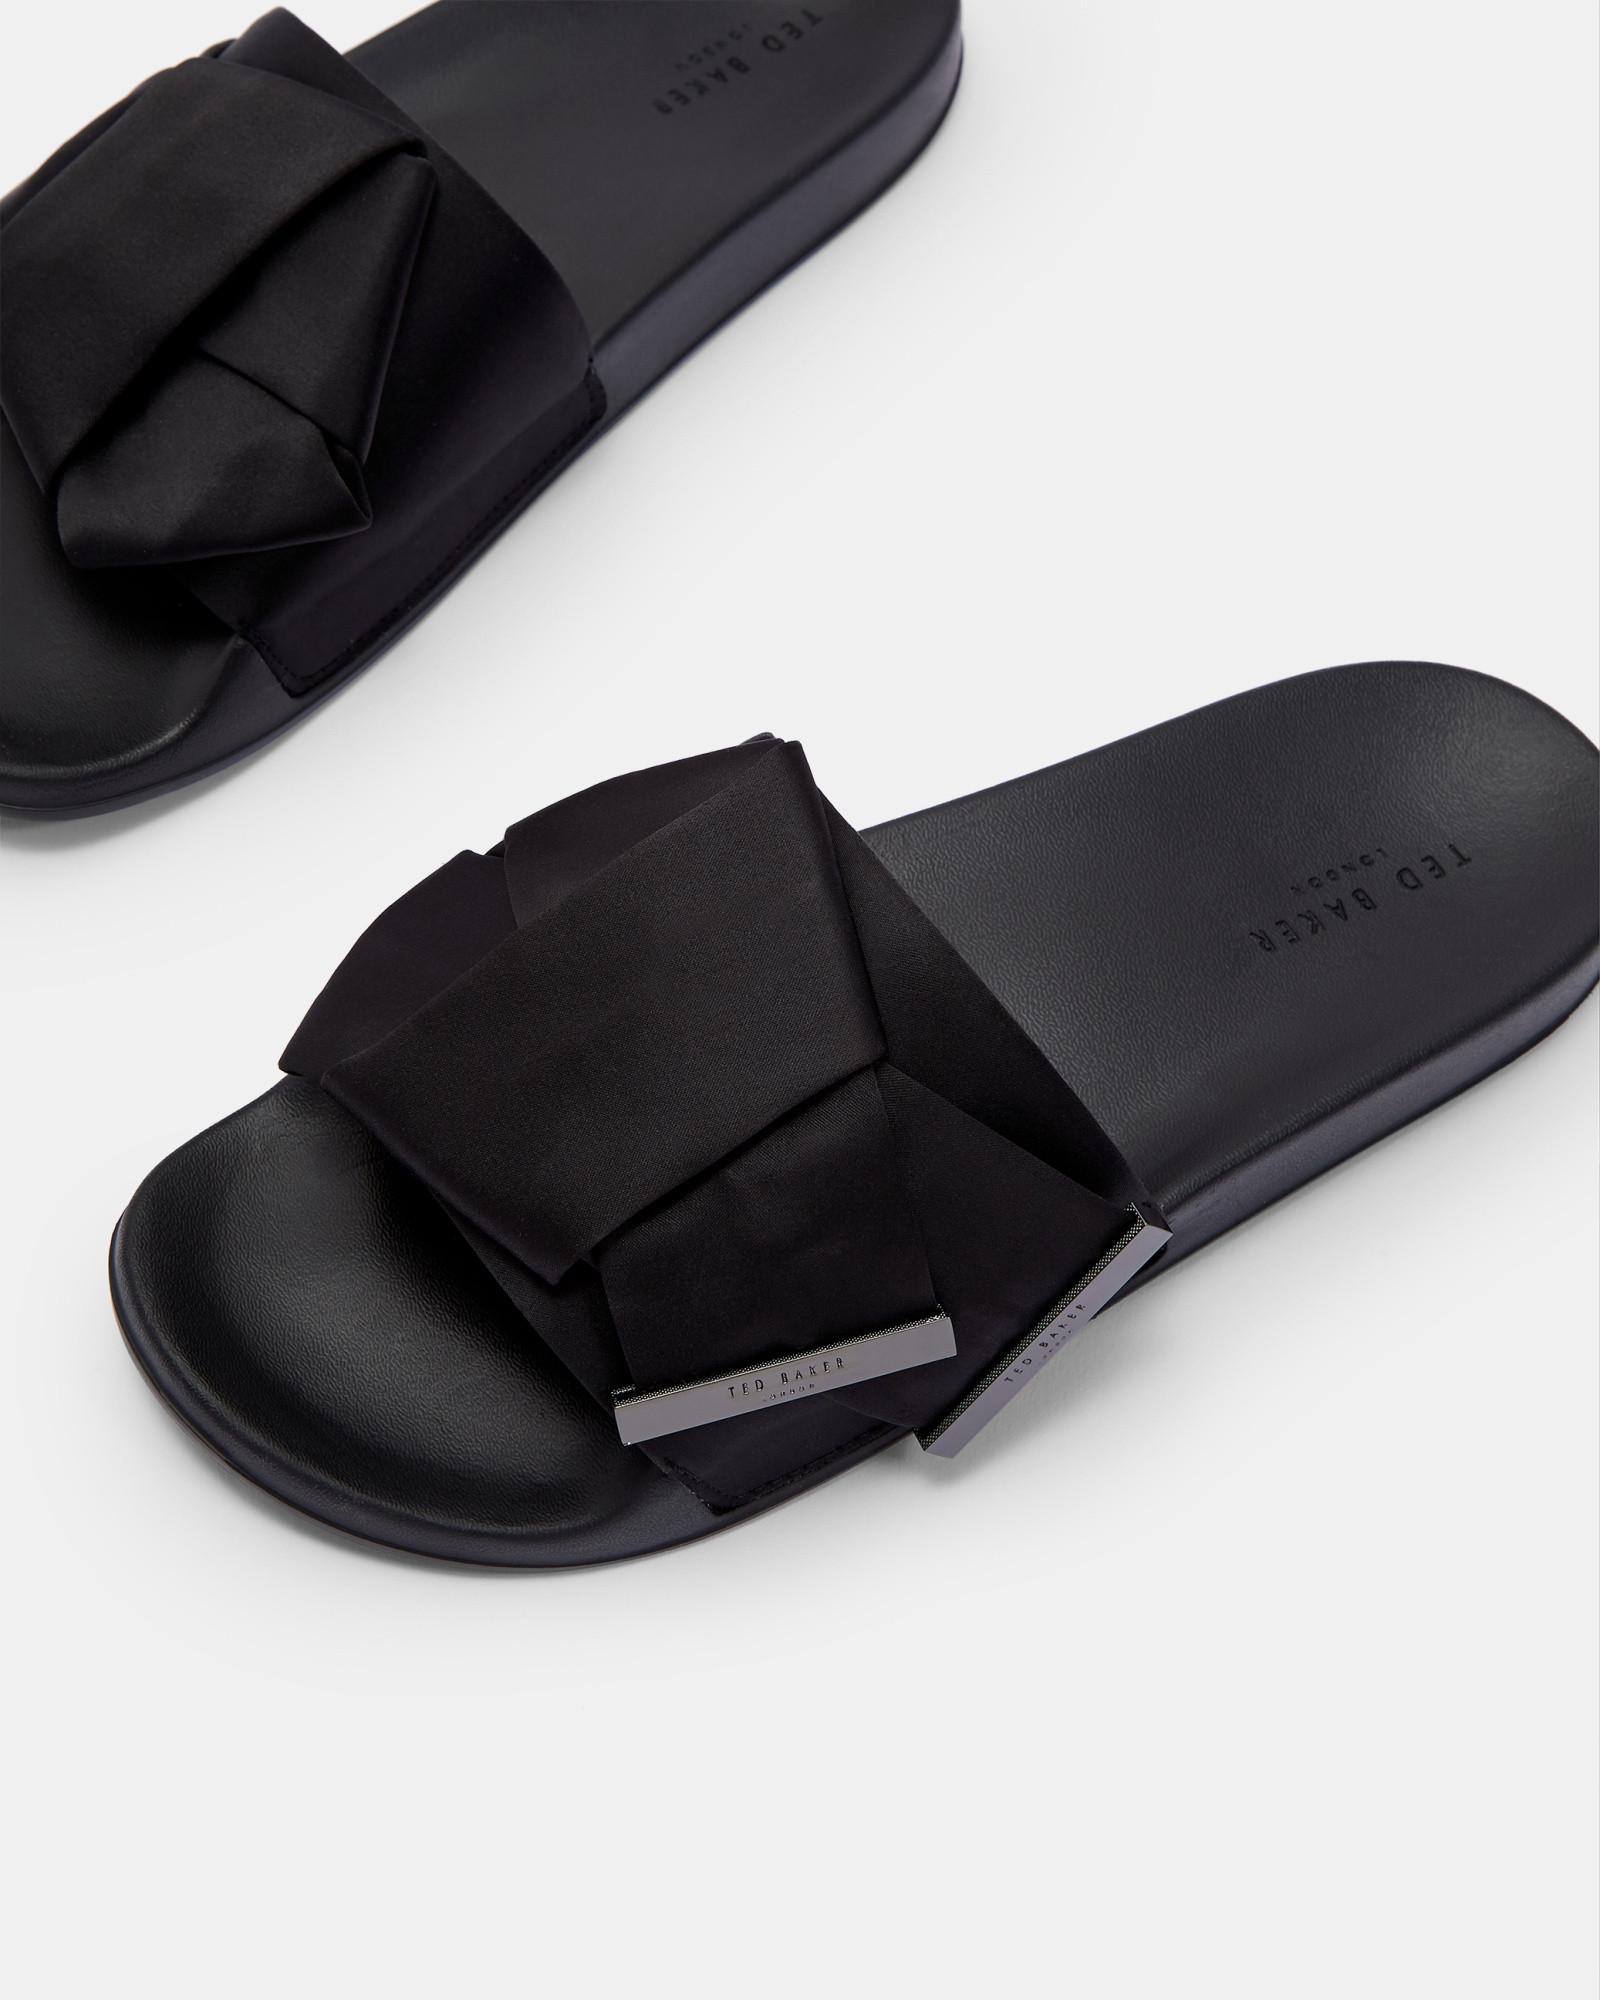 dce216f98 Ted Baker - Black Knotted Bow Sliders - Lyst. View fullscreen